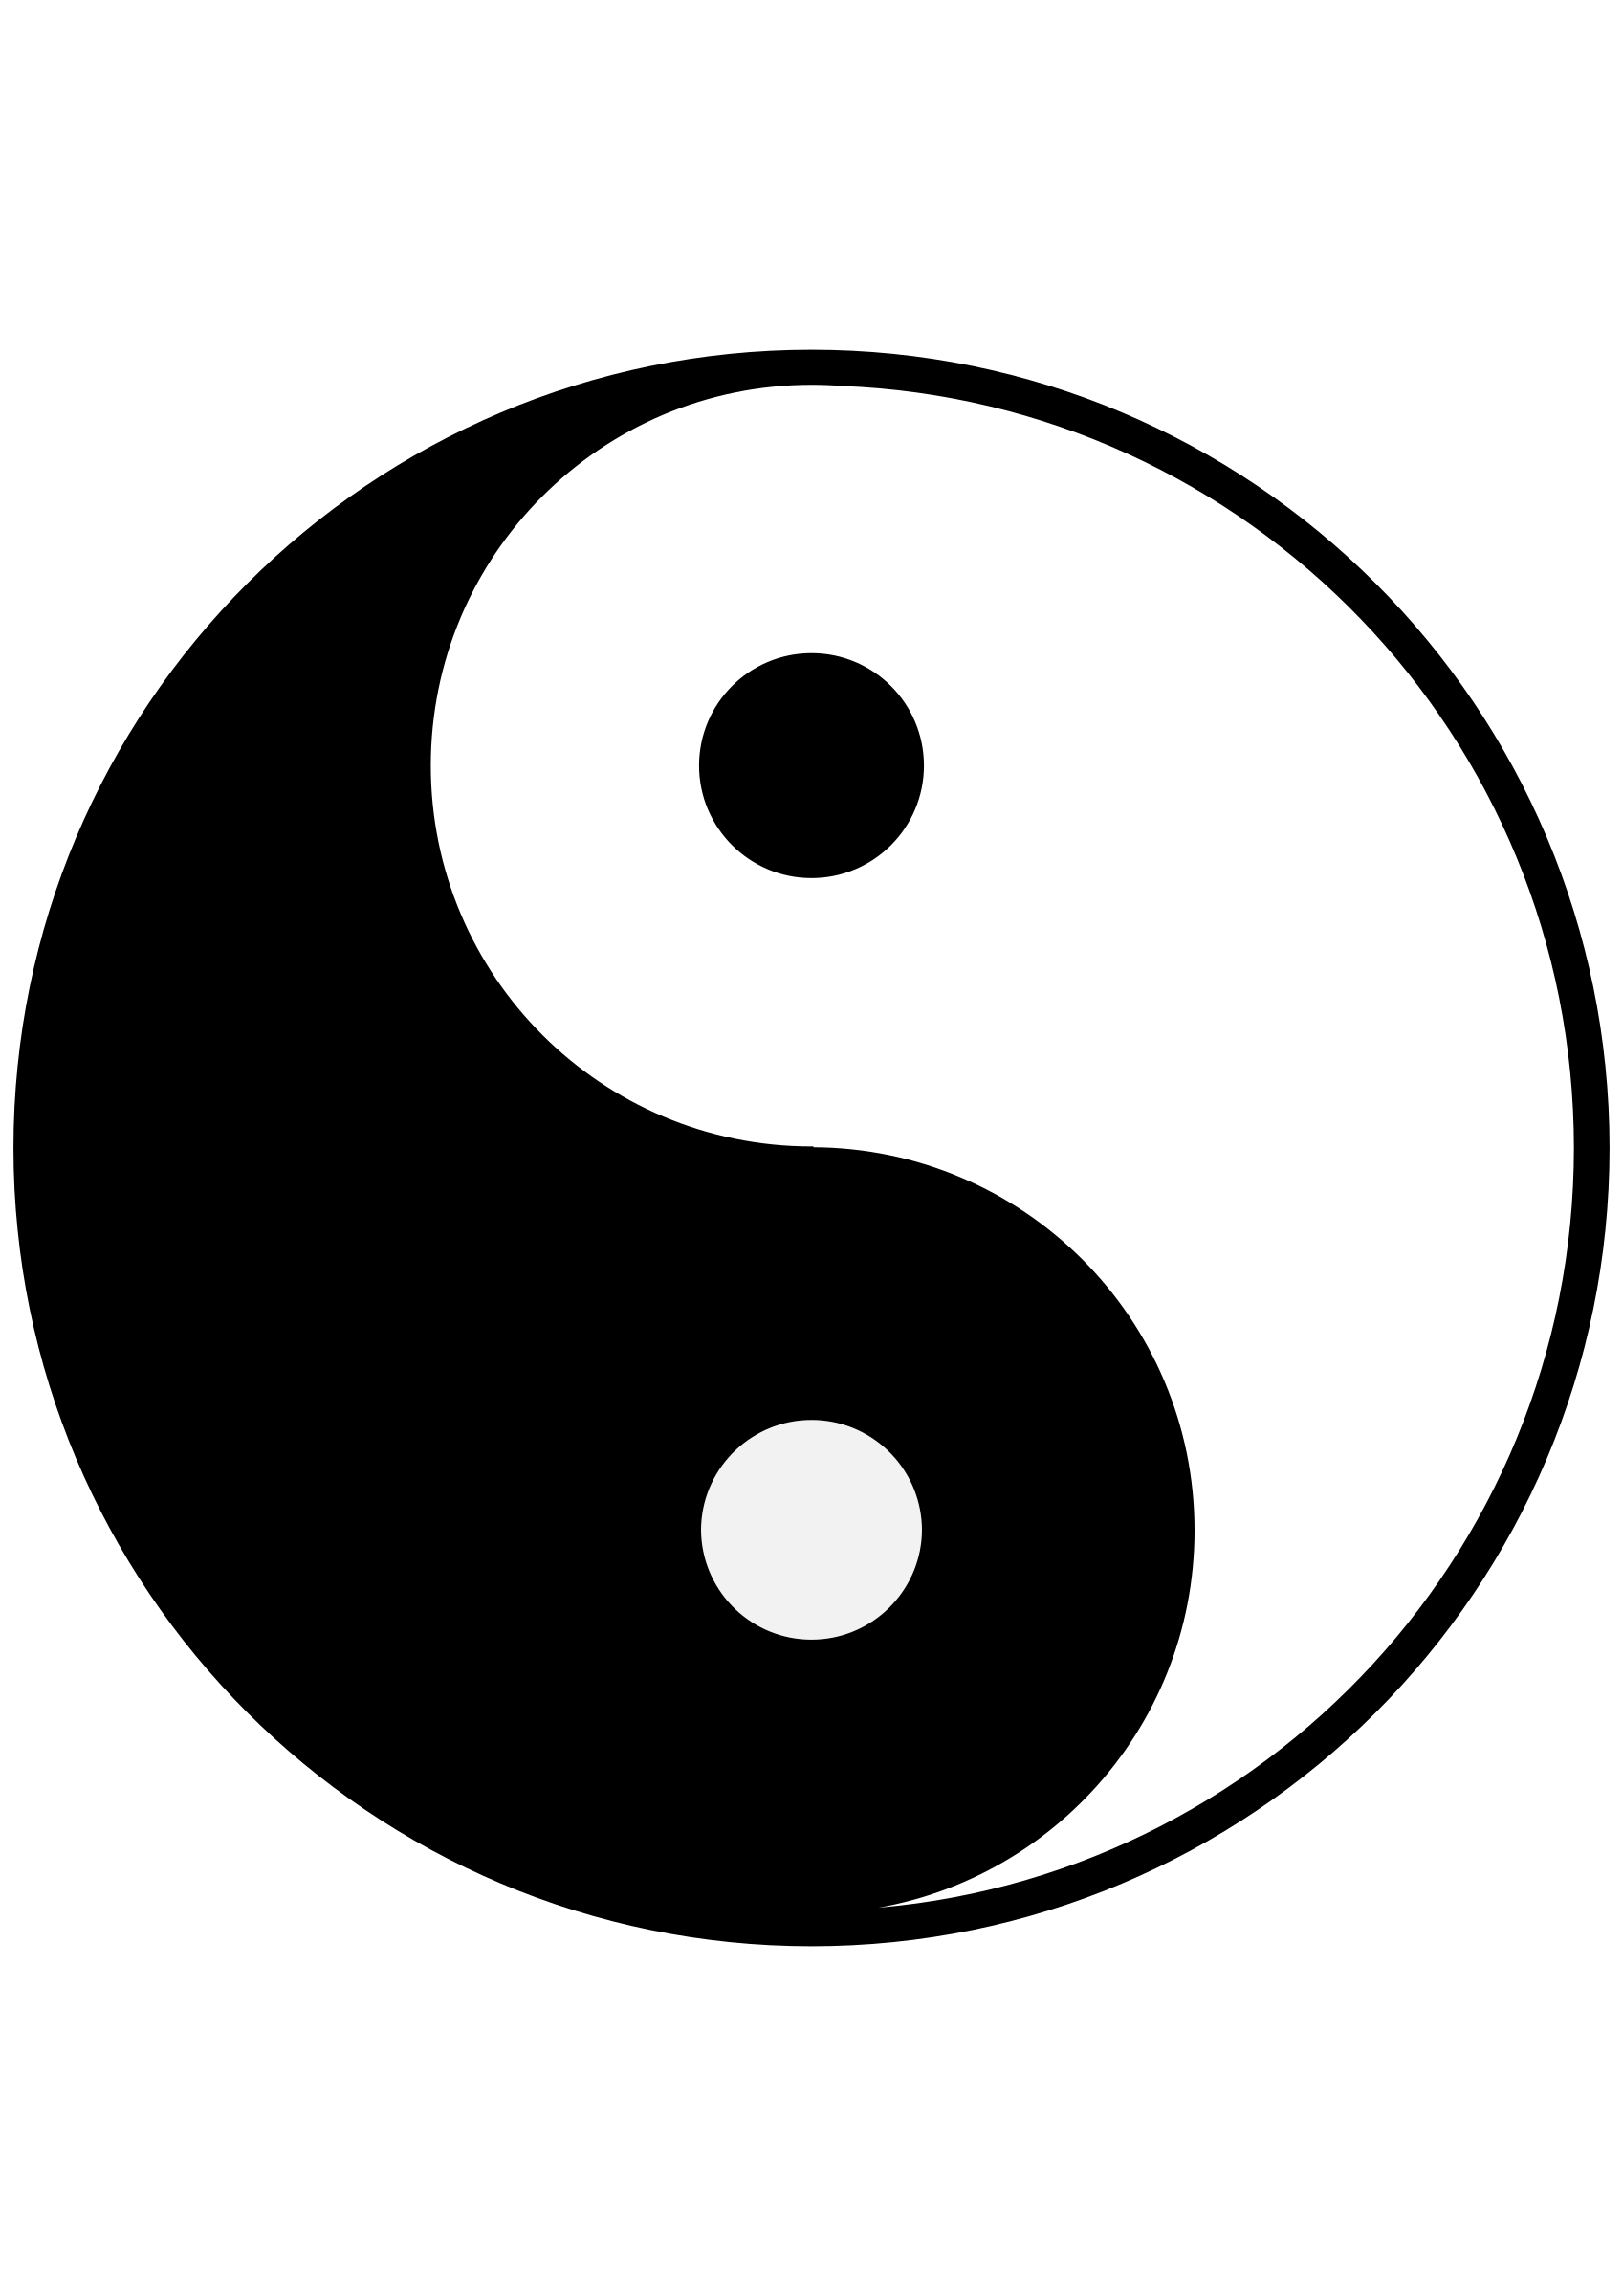 Symbol Yin and yang.